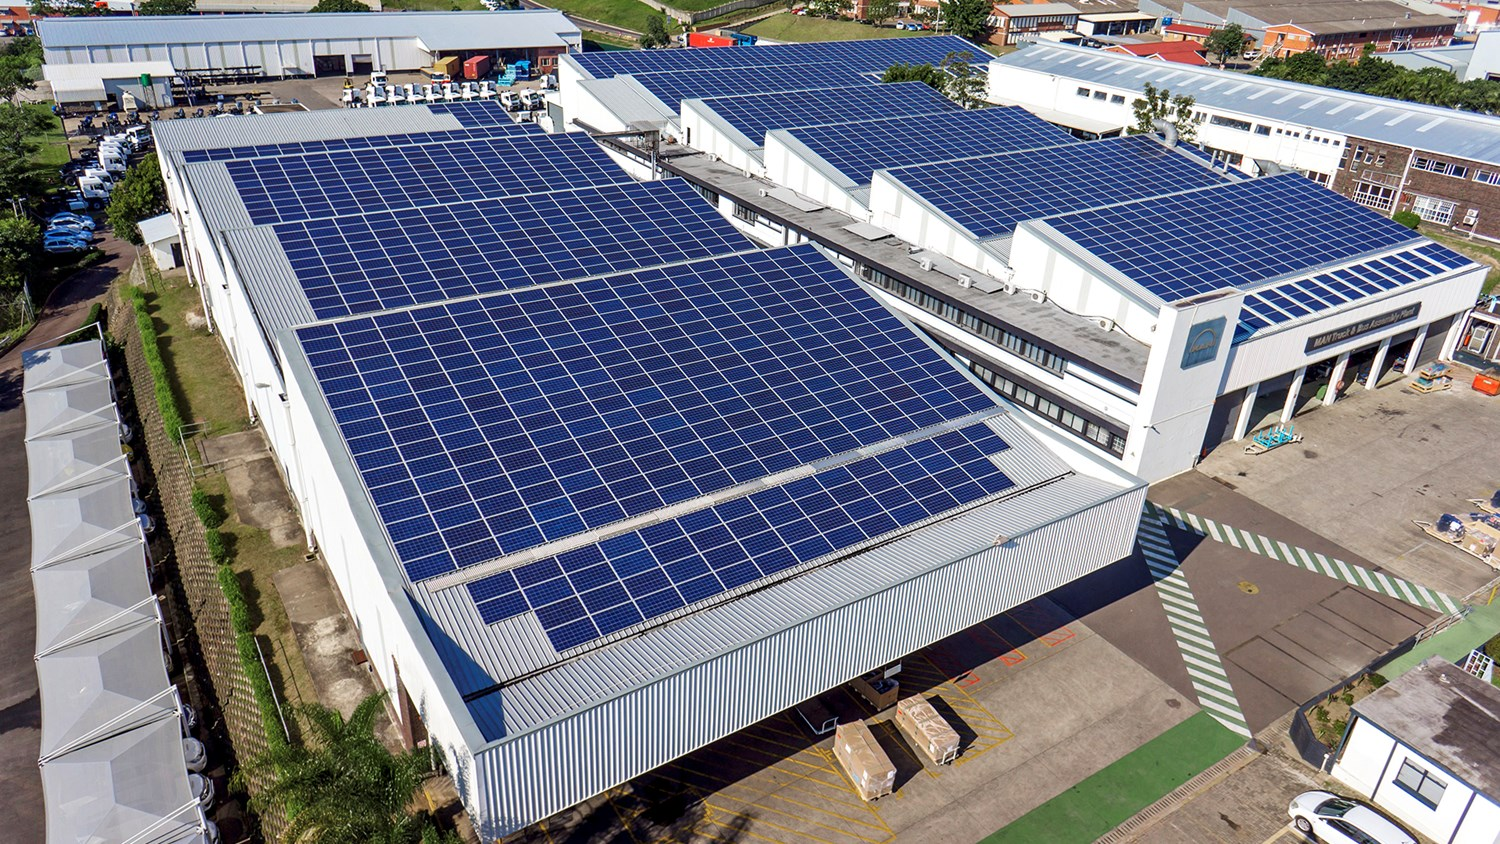 The plant in Pinetown / South Africa is the first CO2-neutral truck plant of MAN Truck & Bus